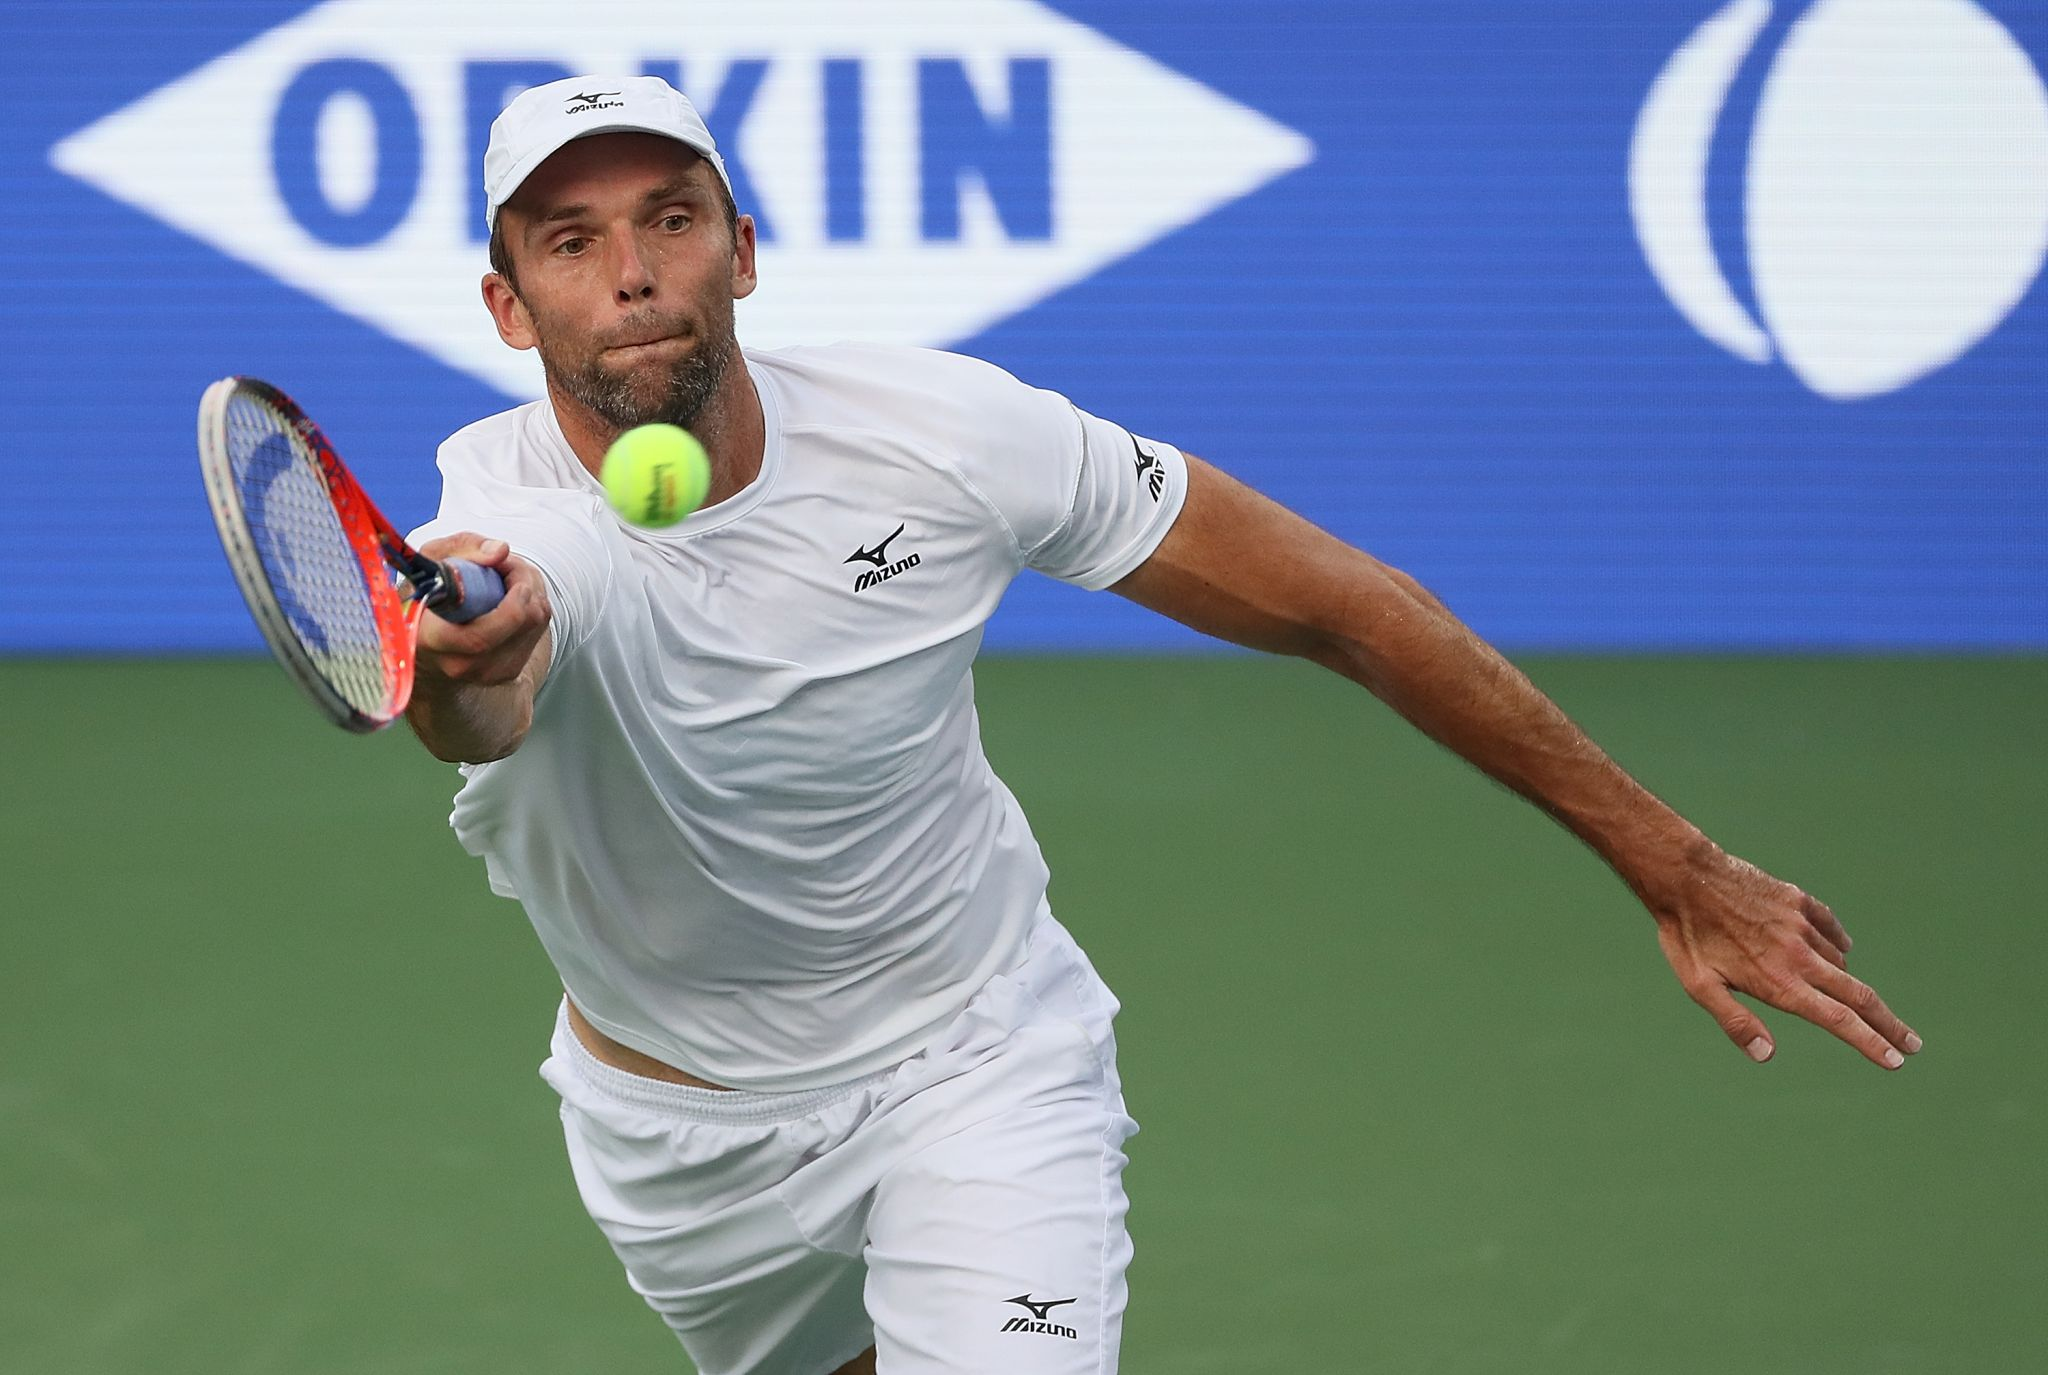 Ivo Karlovic headlines Oracle Challenger Series tennis qualifiers at Rice